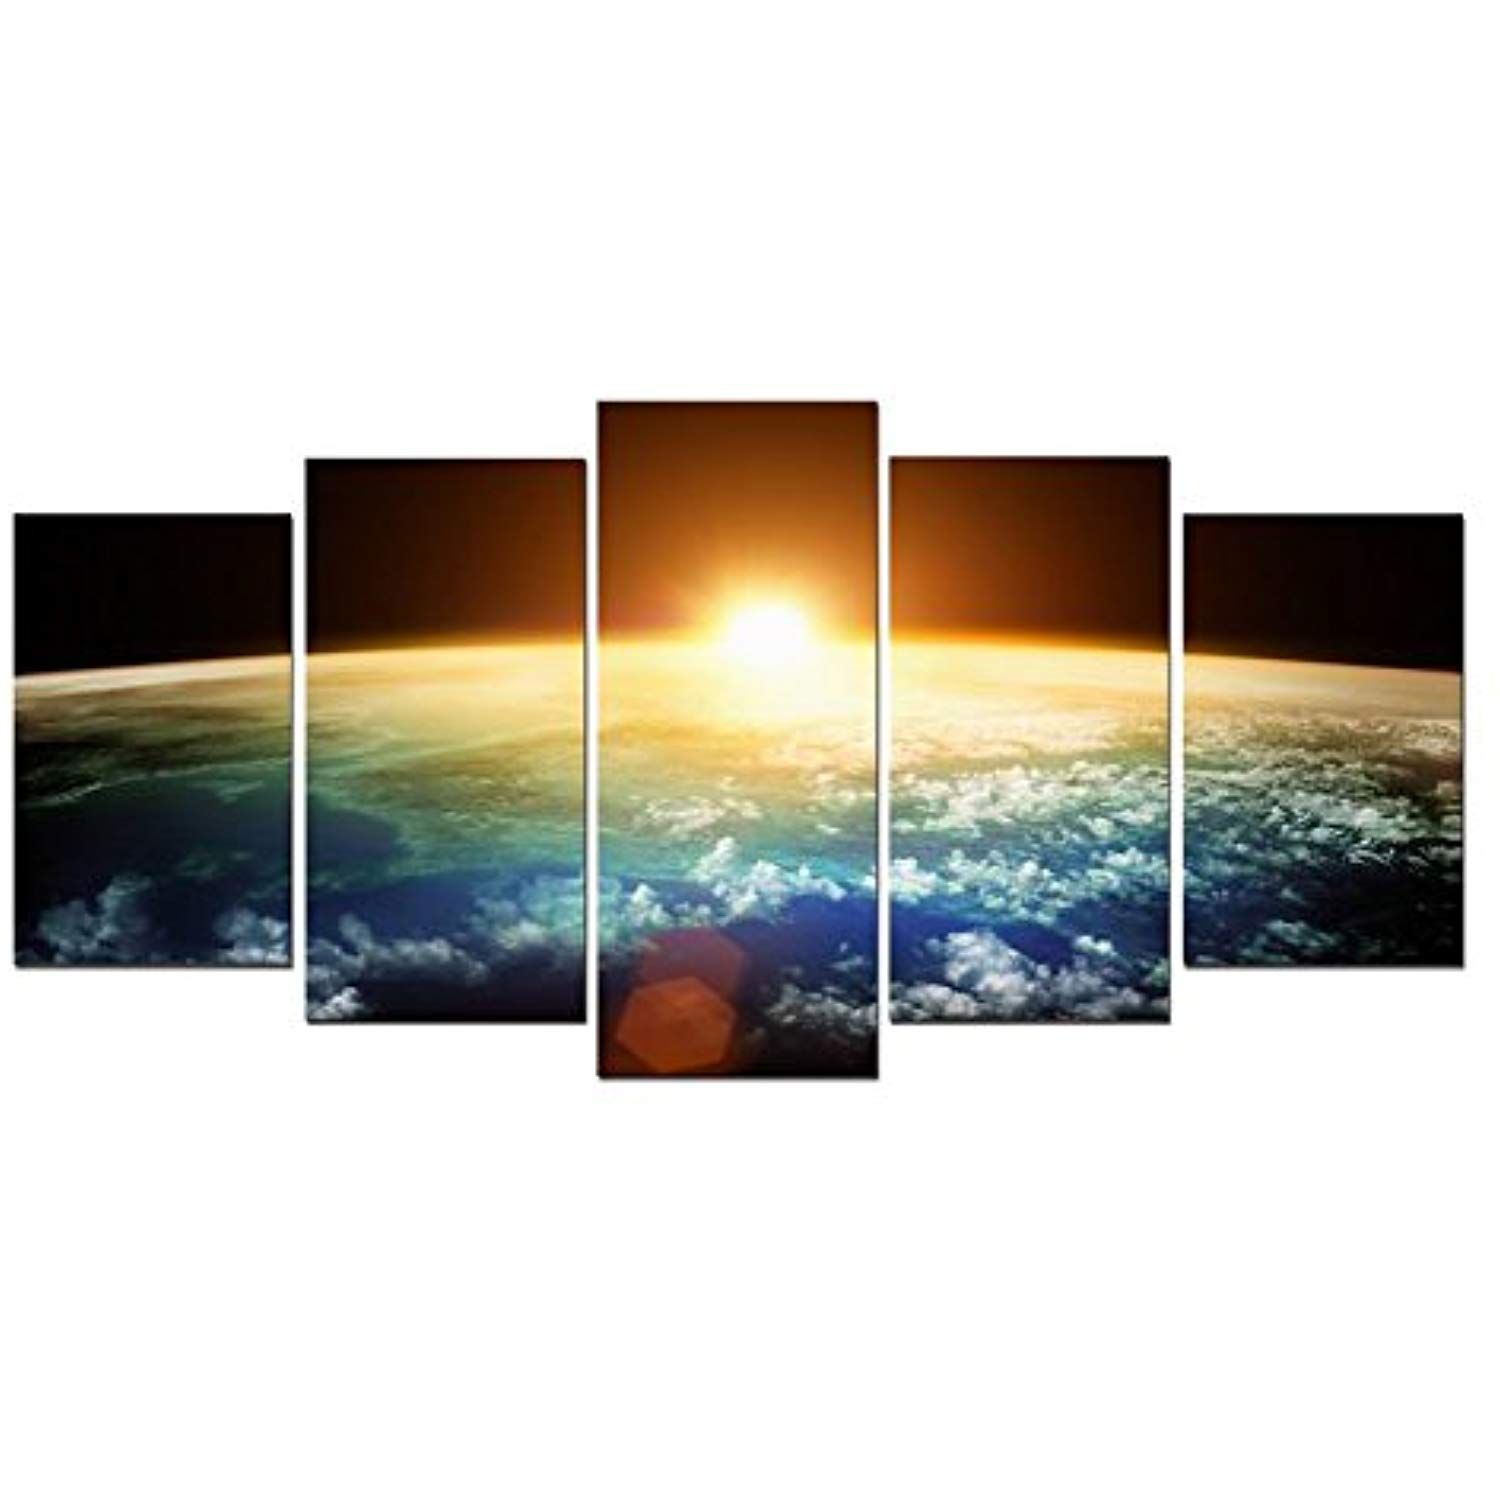 Pyradecor The Earth 5 Panels Extra Large Modern Landscape Artwork Giclee Canvas Prints Space Modern Wall Art Canvas Wall Canvas Painting Framed Canvas Wall Art